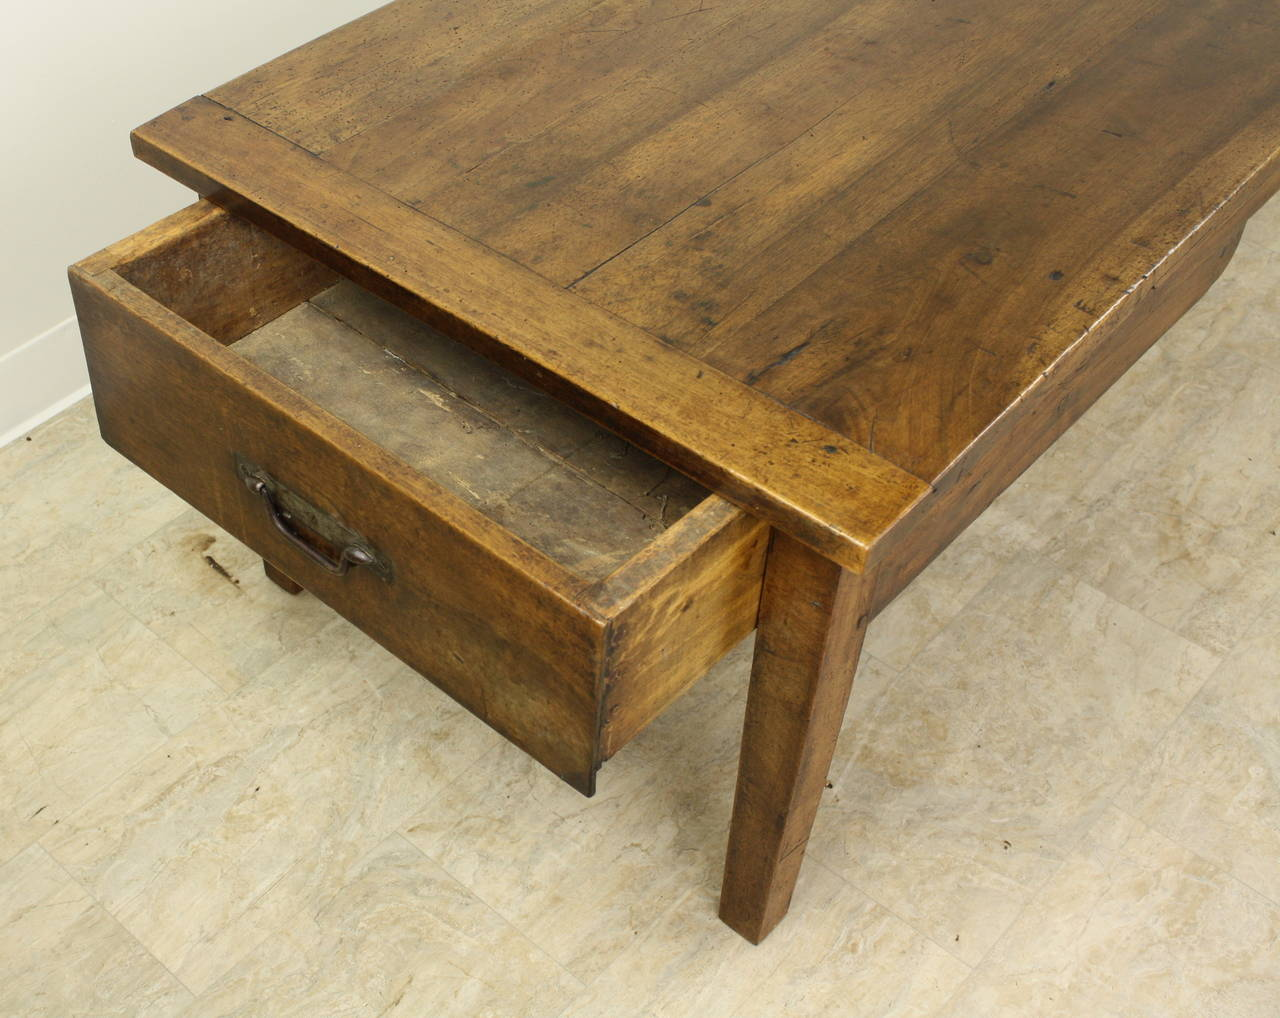 Antique Walnut Coffee Table with Two Drawers In Good Condition For Sale In Port Chester, NY